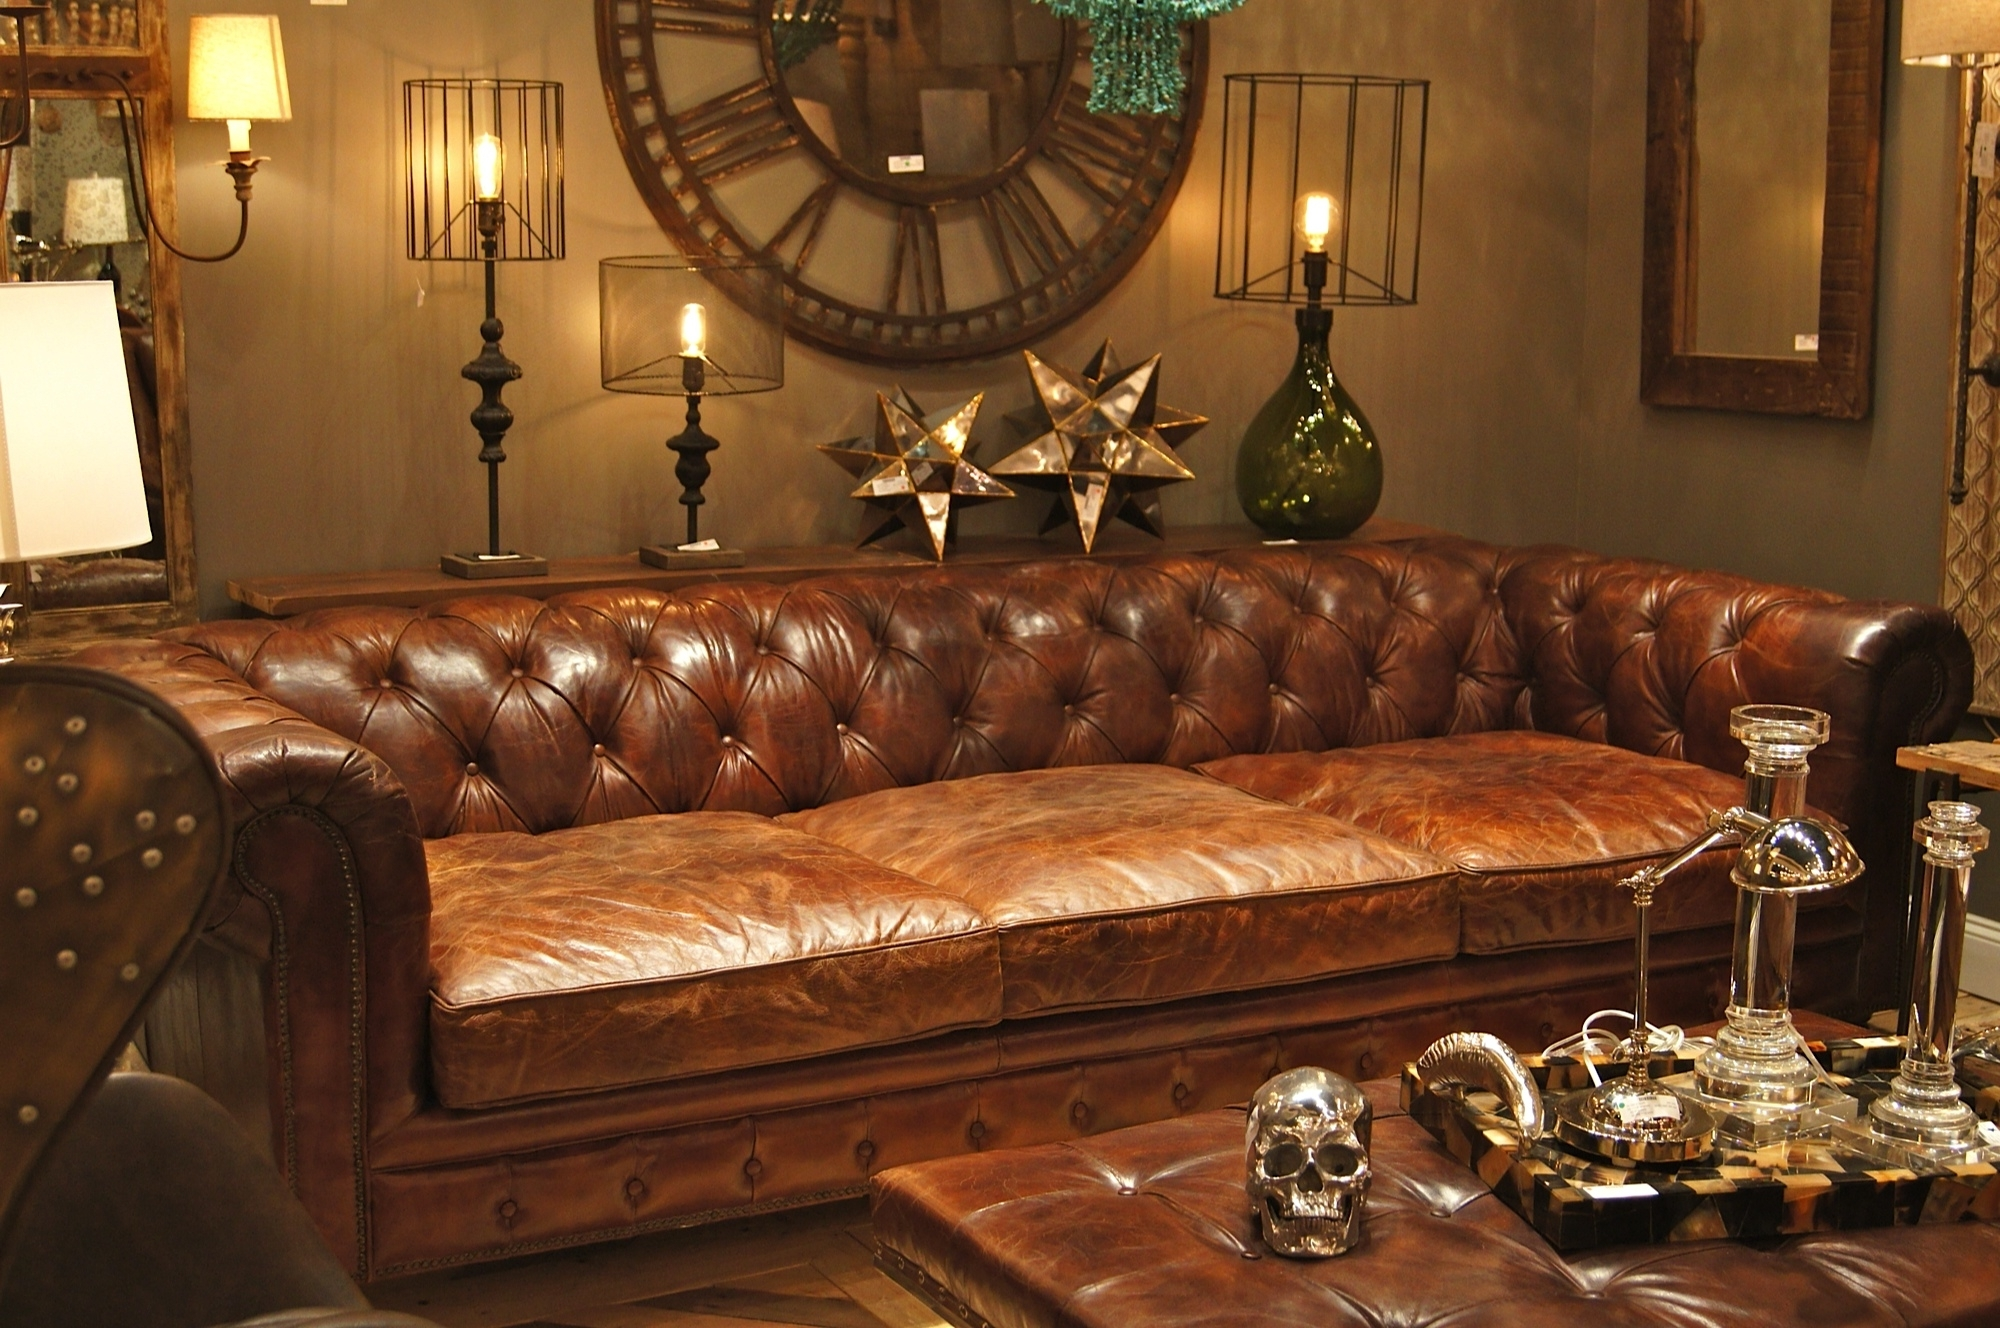 Extra Deep Chesterfield Sofa In Antique Brown Finish Plus Tufted Pertaining To Recent Deep Cushion Sofas (View 9 of 15)